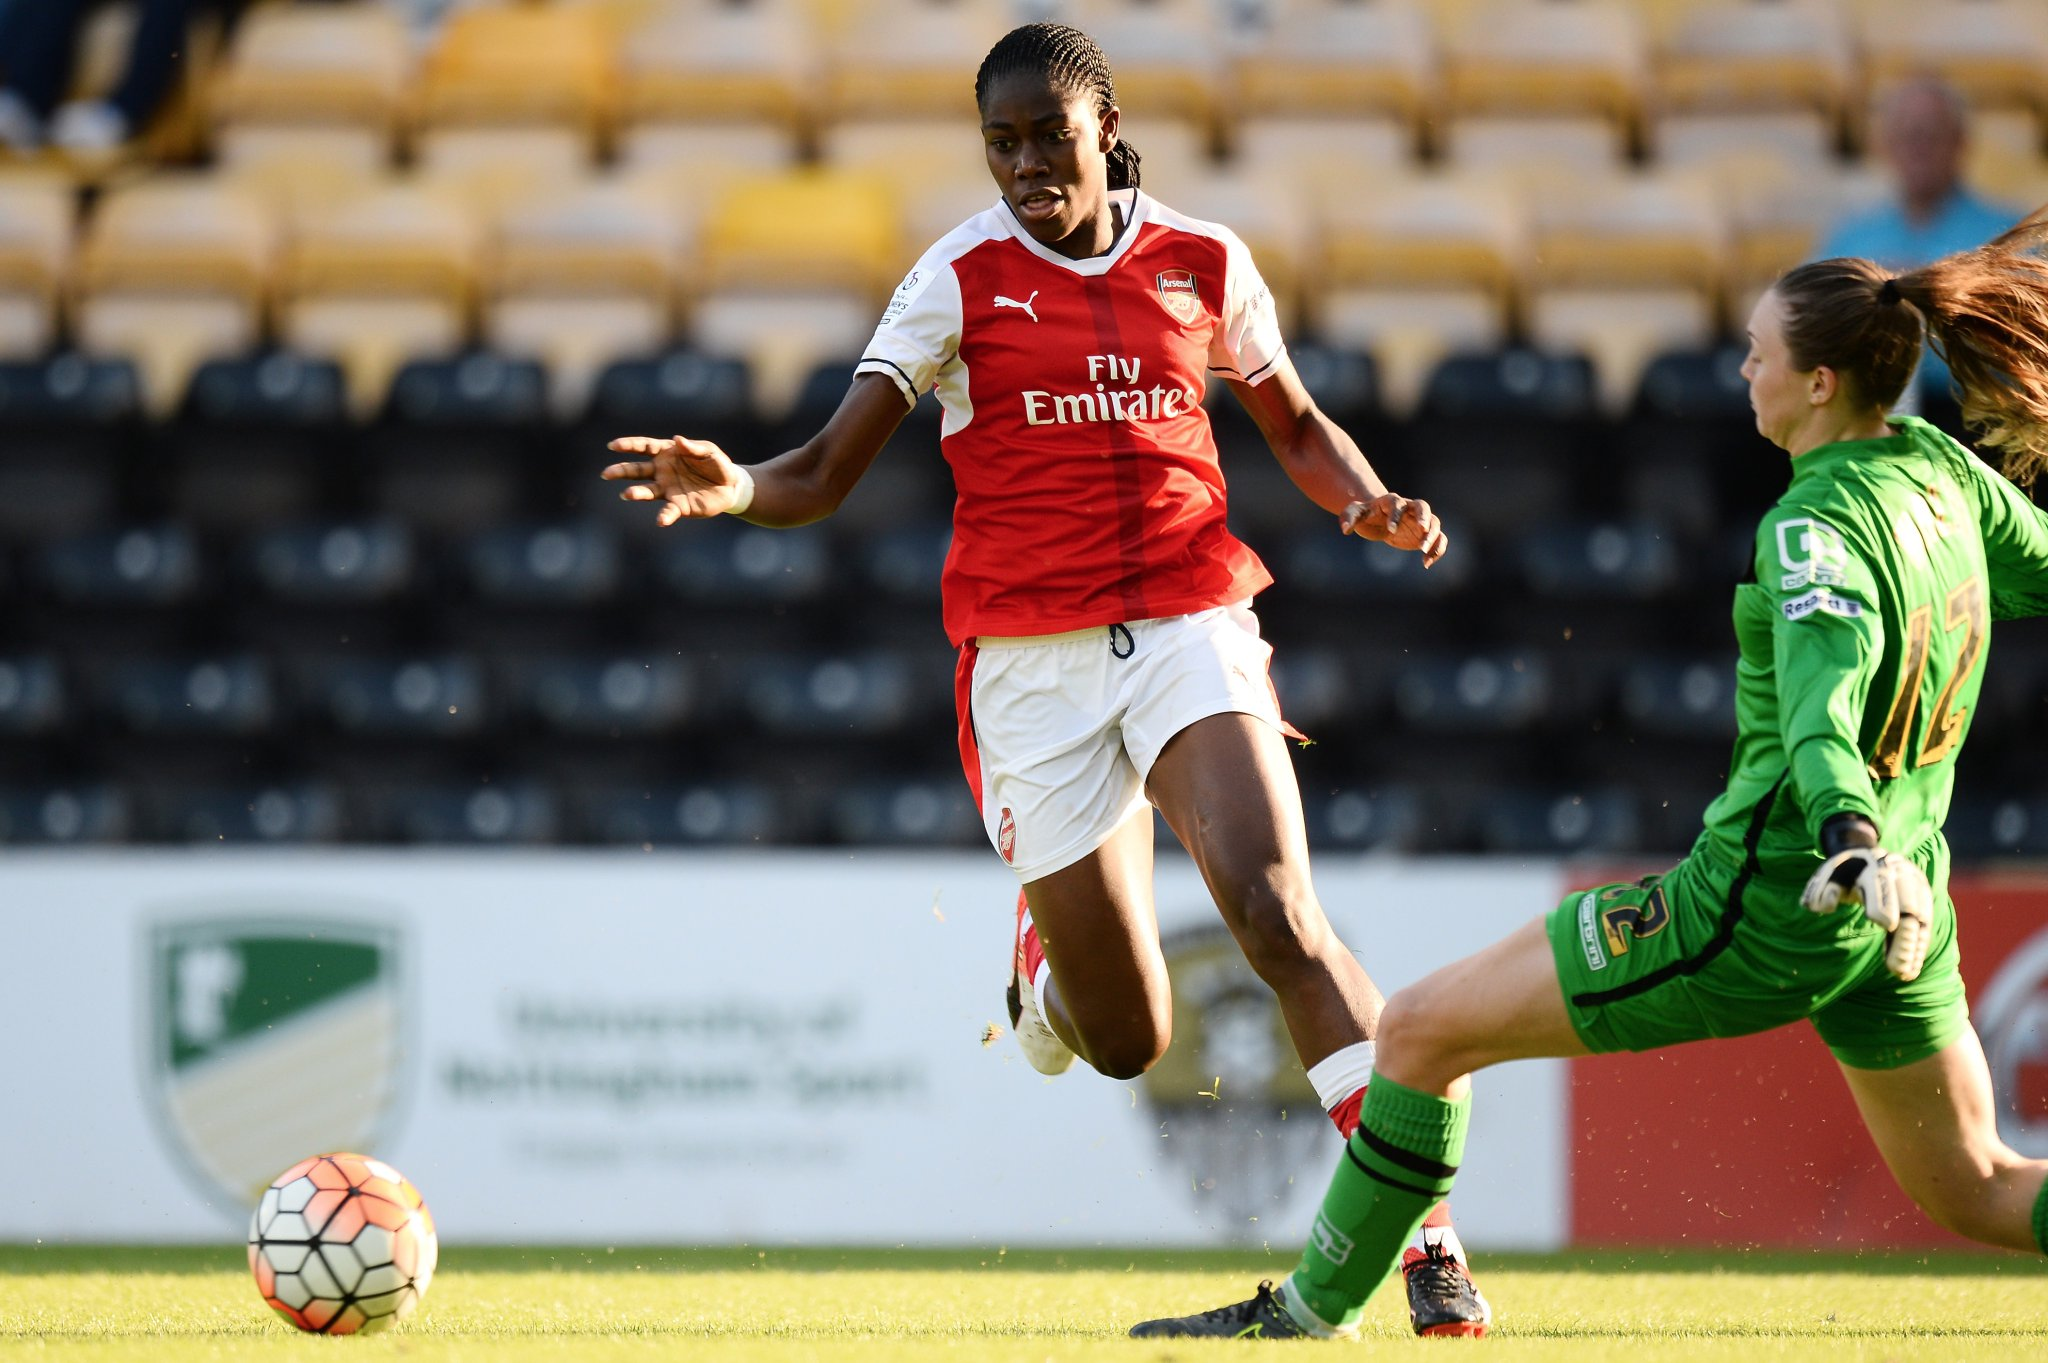 Oshoala On Target As Arsenal Ladies Outscore Notts County